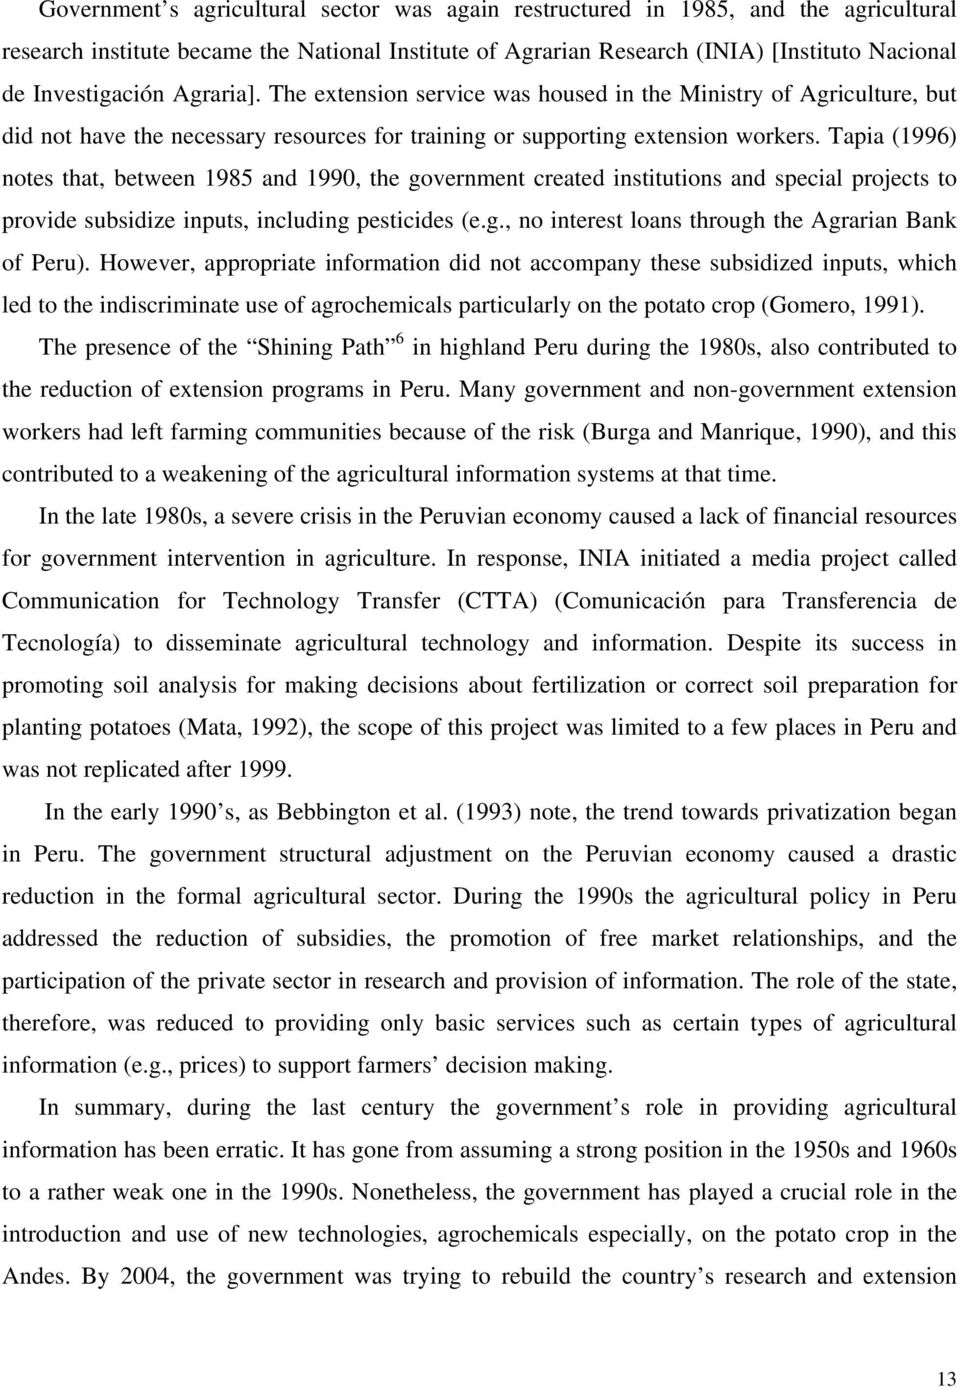 Tapia (1996) notes that, between 1985 and 1990, the government created institutions and special projects to provide subsidize inputs, including pesticides (e.g., no interest loans through the Agrarian Bank of Peru).